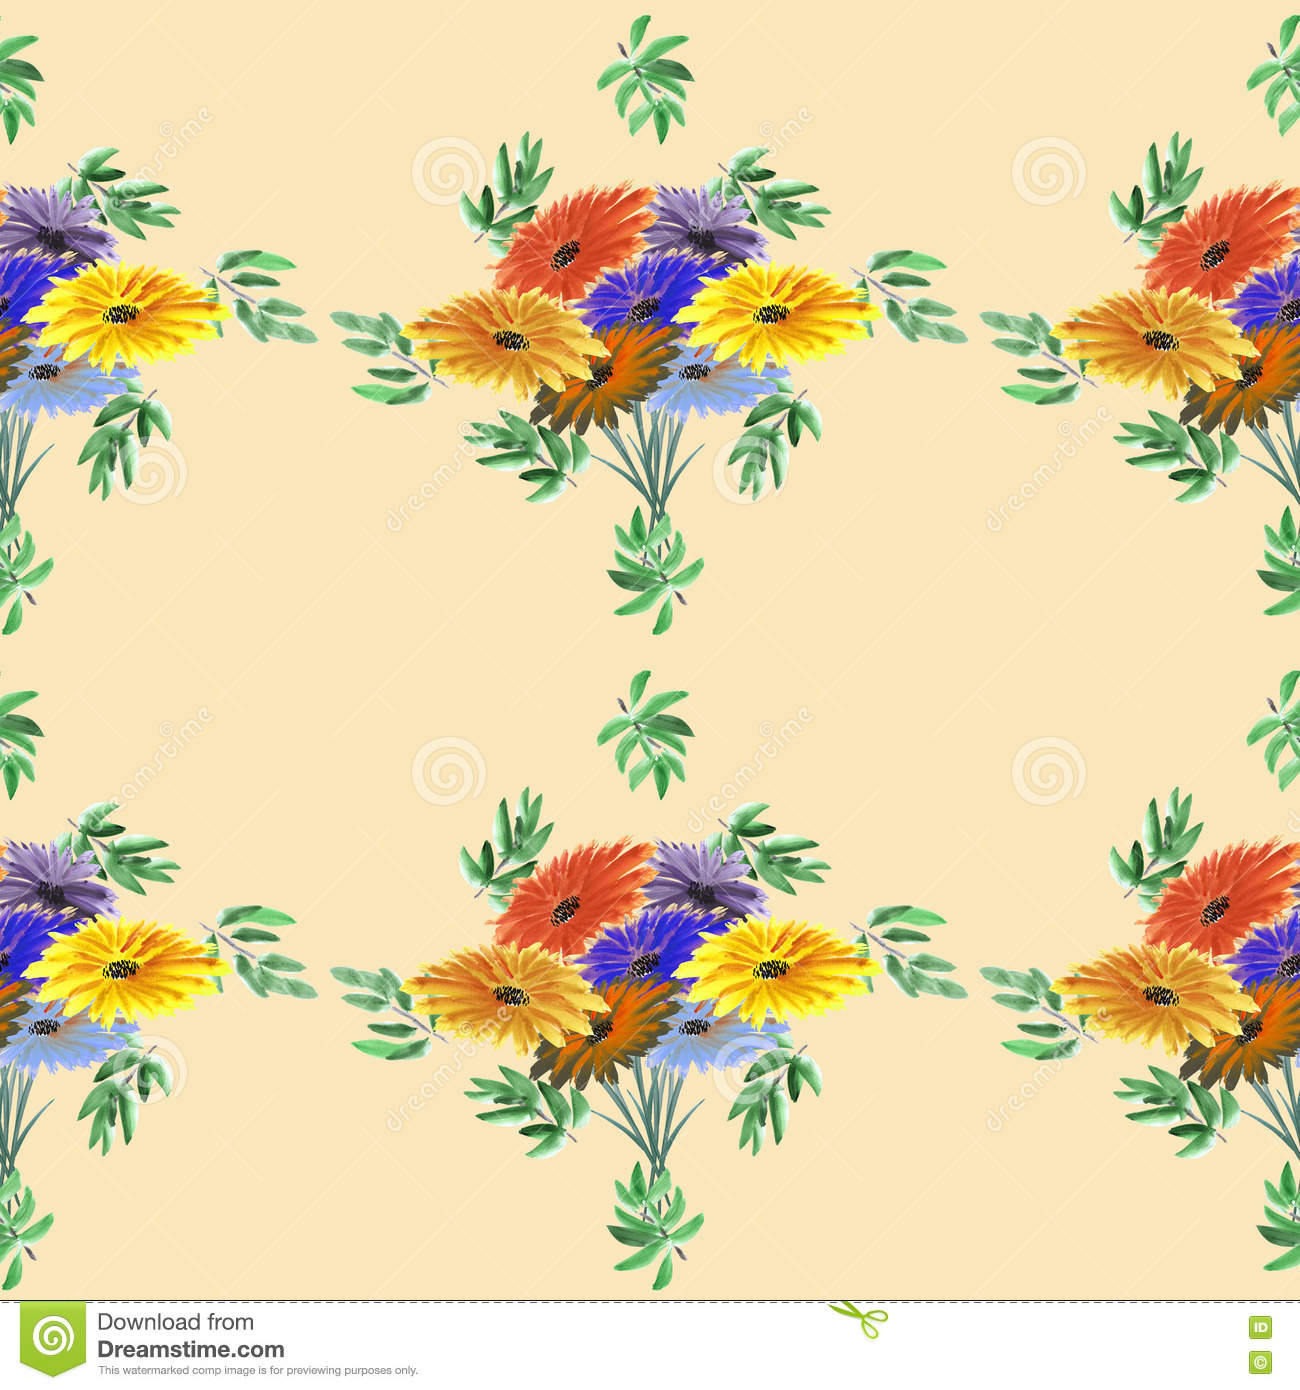 Seamless pattern watercolor of green leaves and bright flowers on a beige background. Geometric